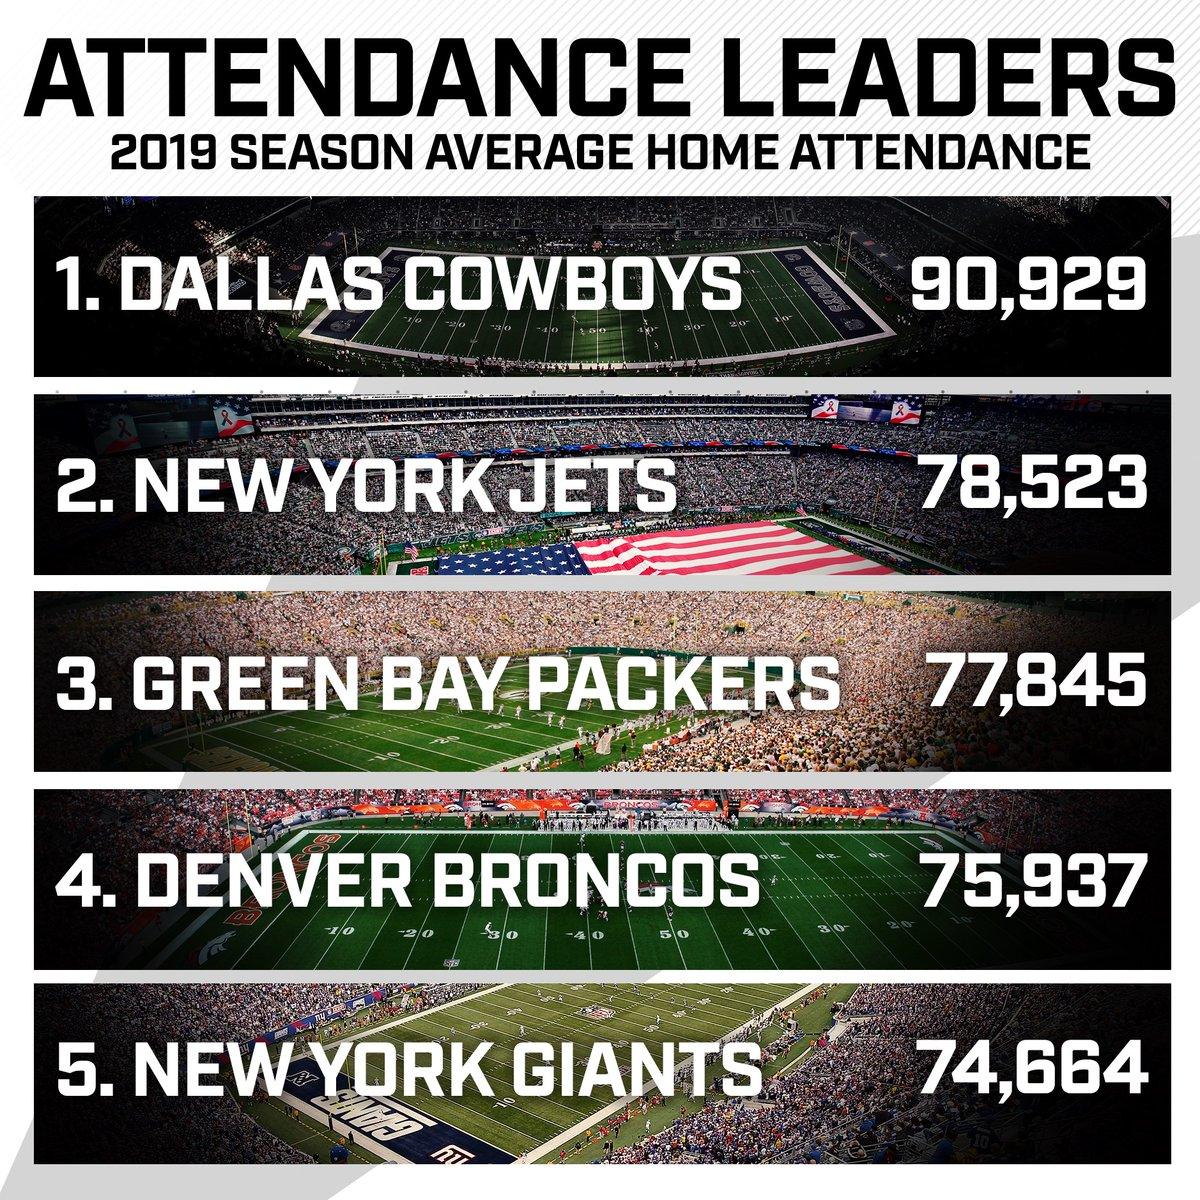 You've gotta show up for your team!   These teams led the @NFL in average home game attendance this season ⬇️